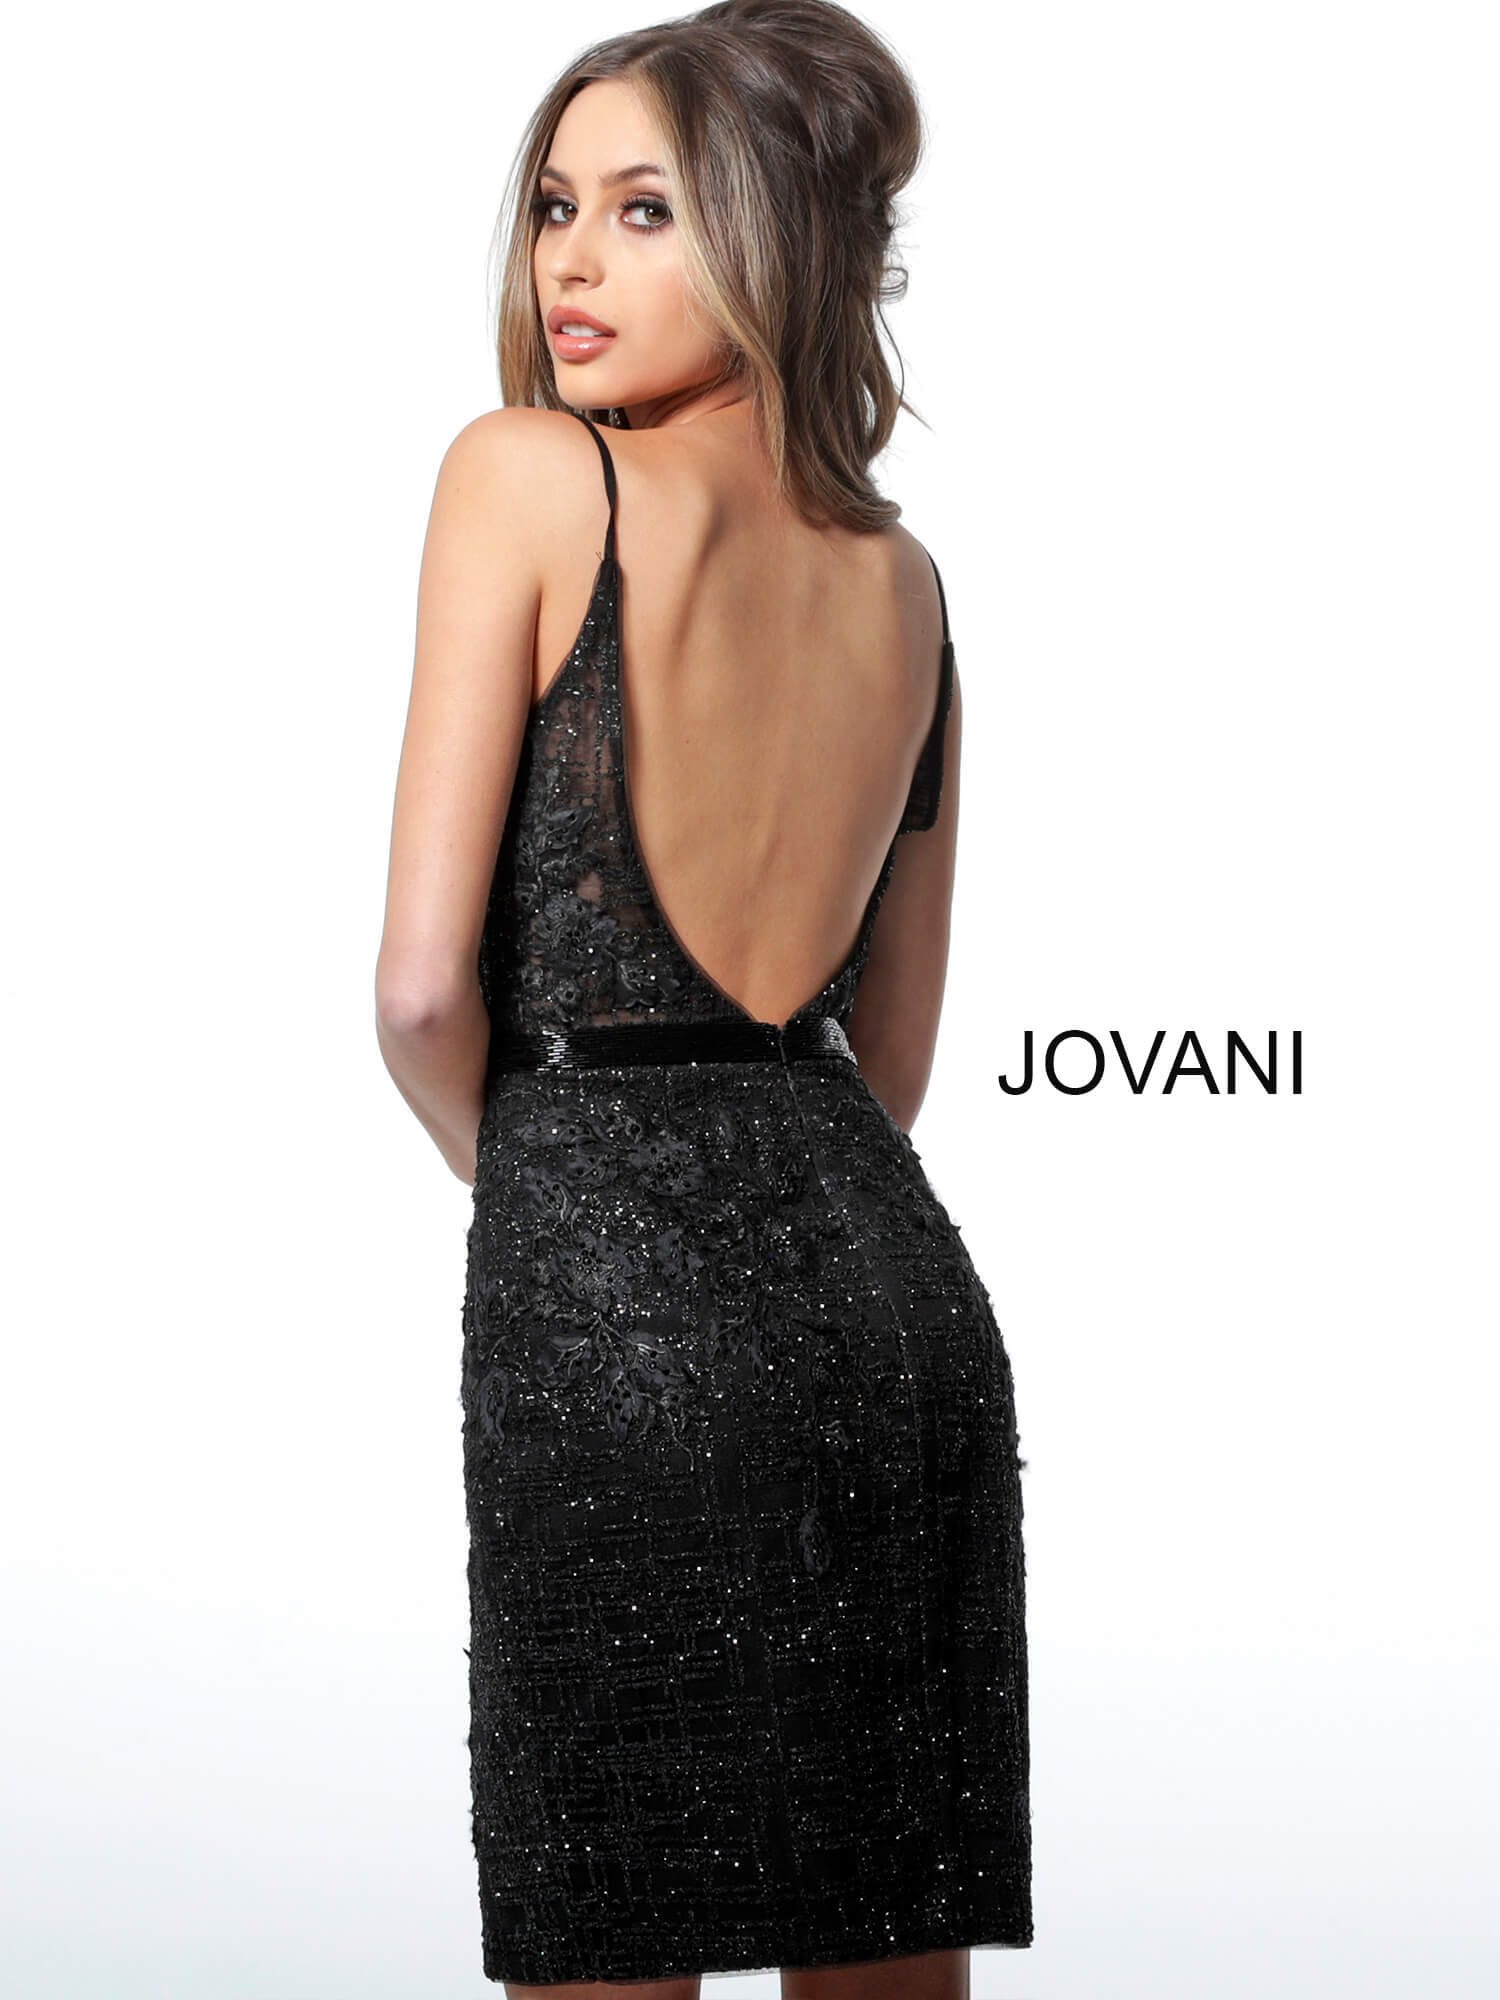 Jovani low back bodycon dress 1106 on mobile 1